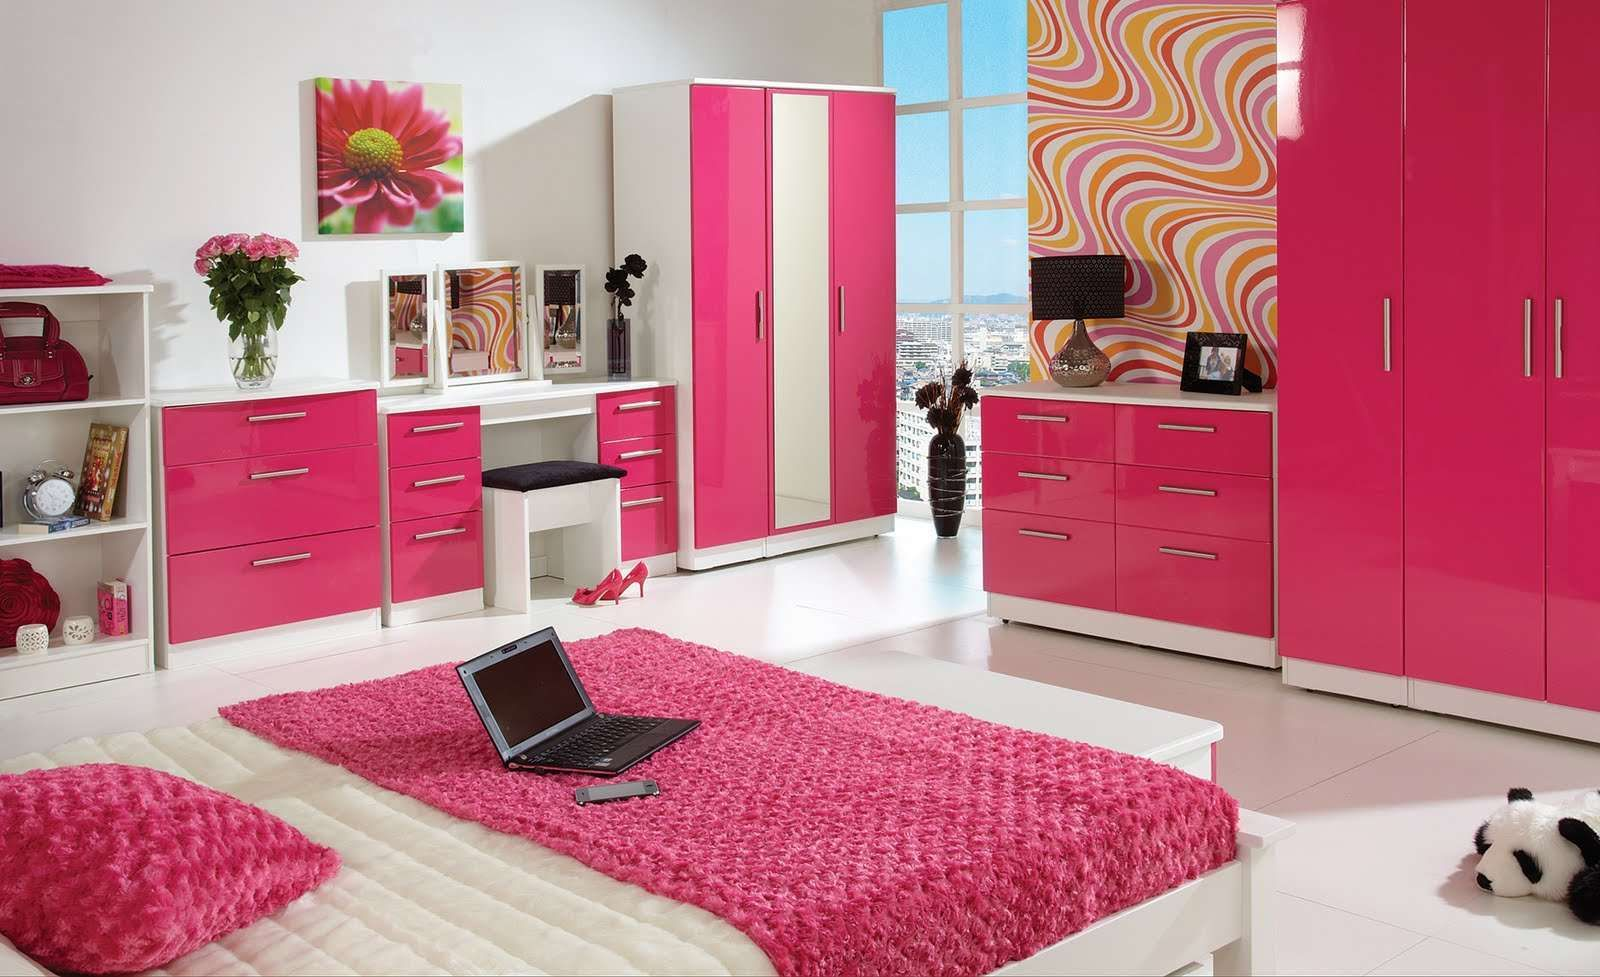 Bedroom Sets For Teens bedroom furniture sets - teenage girls: download best latest